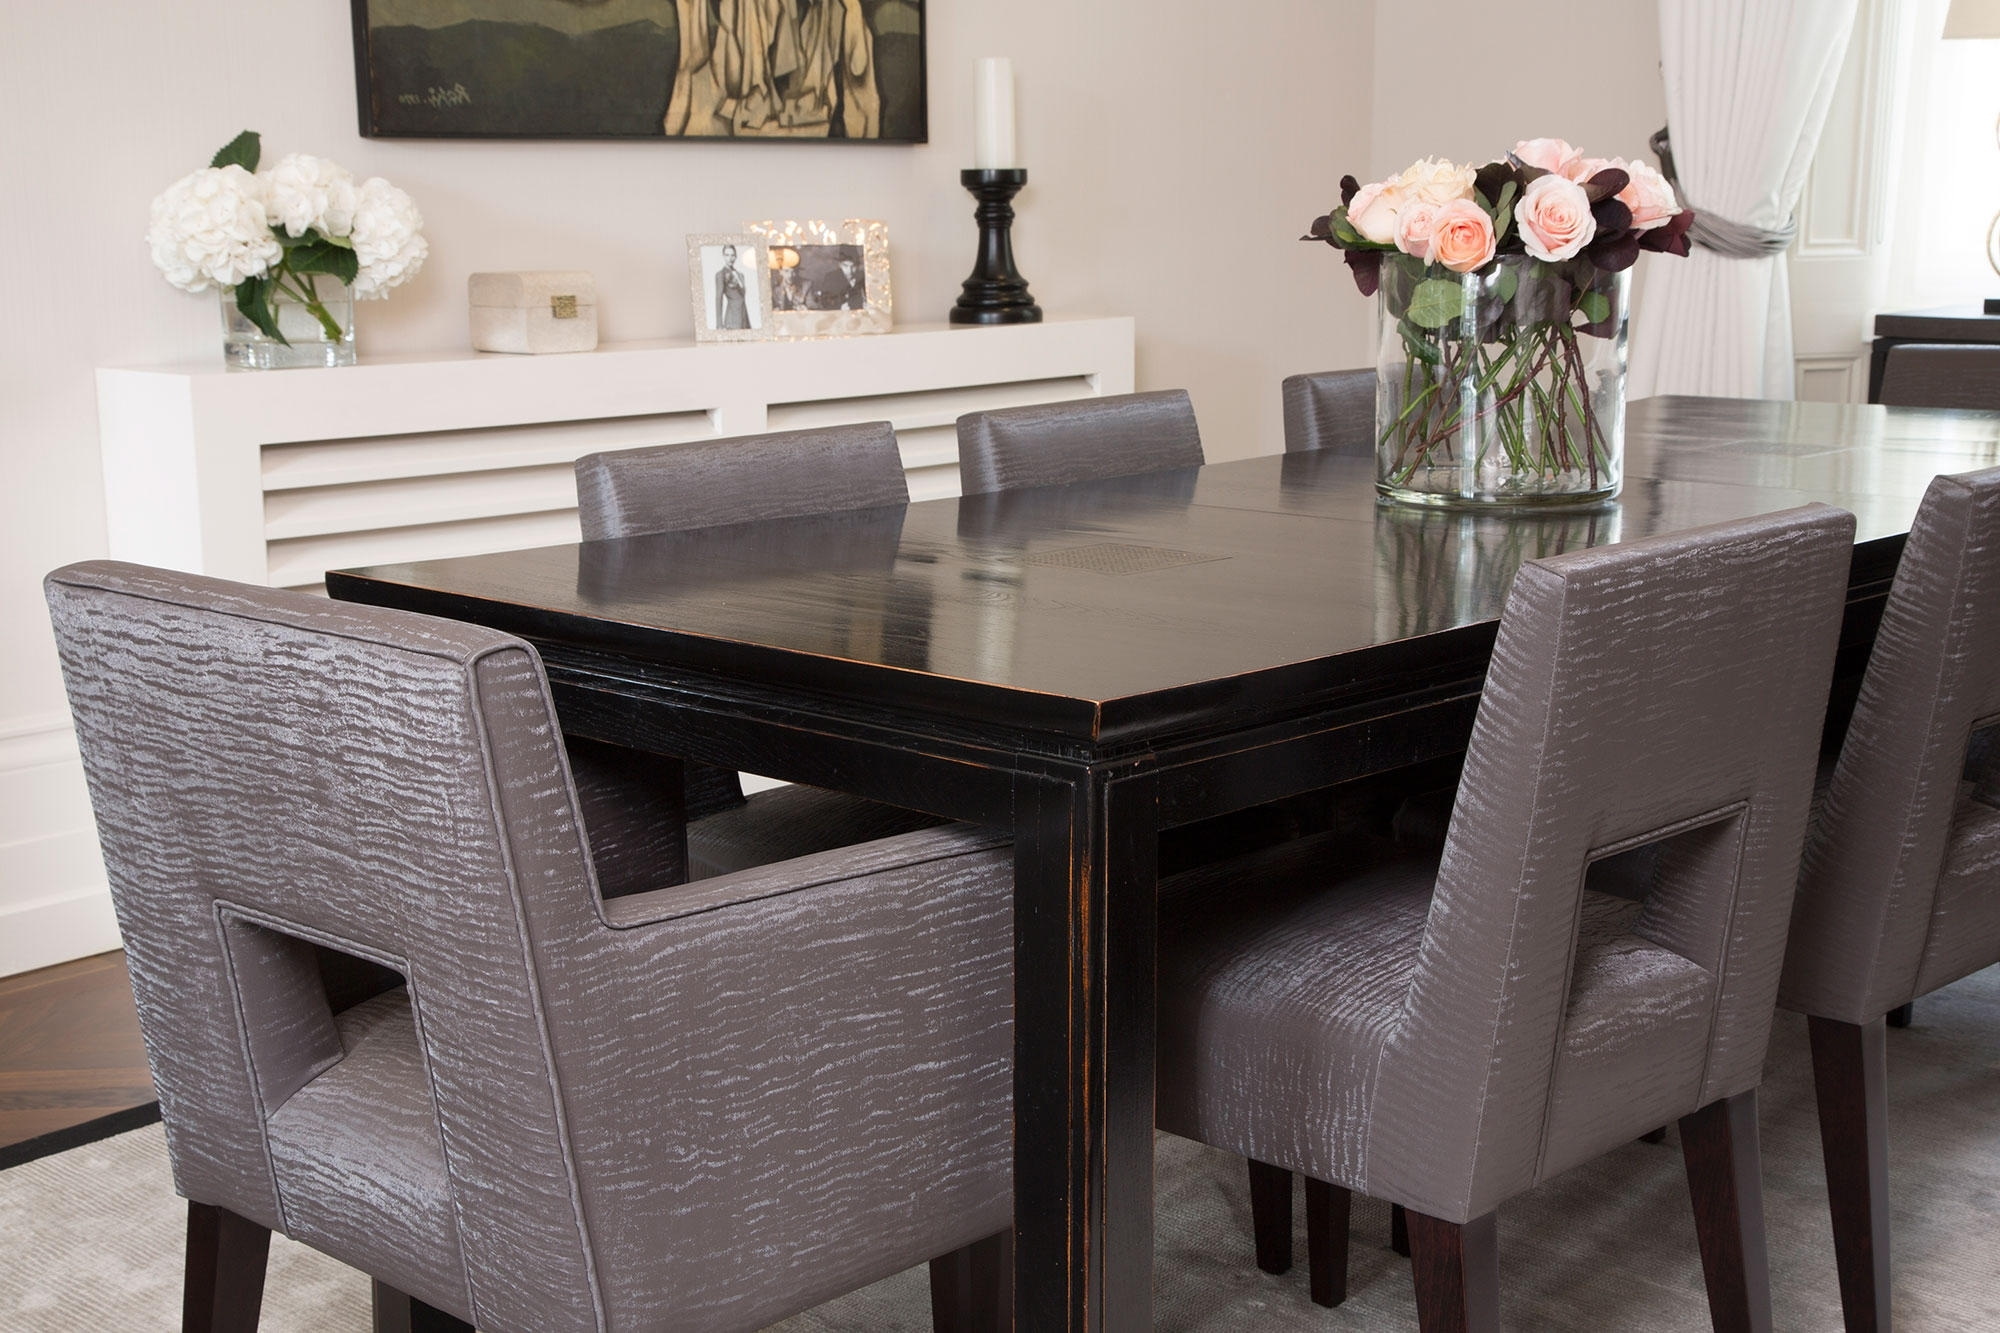 Hugo Dining Chair – Restaurant Chairs From The Sofa & Chair With Regard To Best And Newest Dining Sofa Chairs (View 3 of 20)